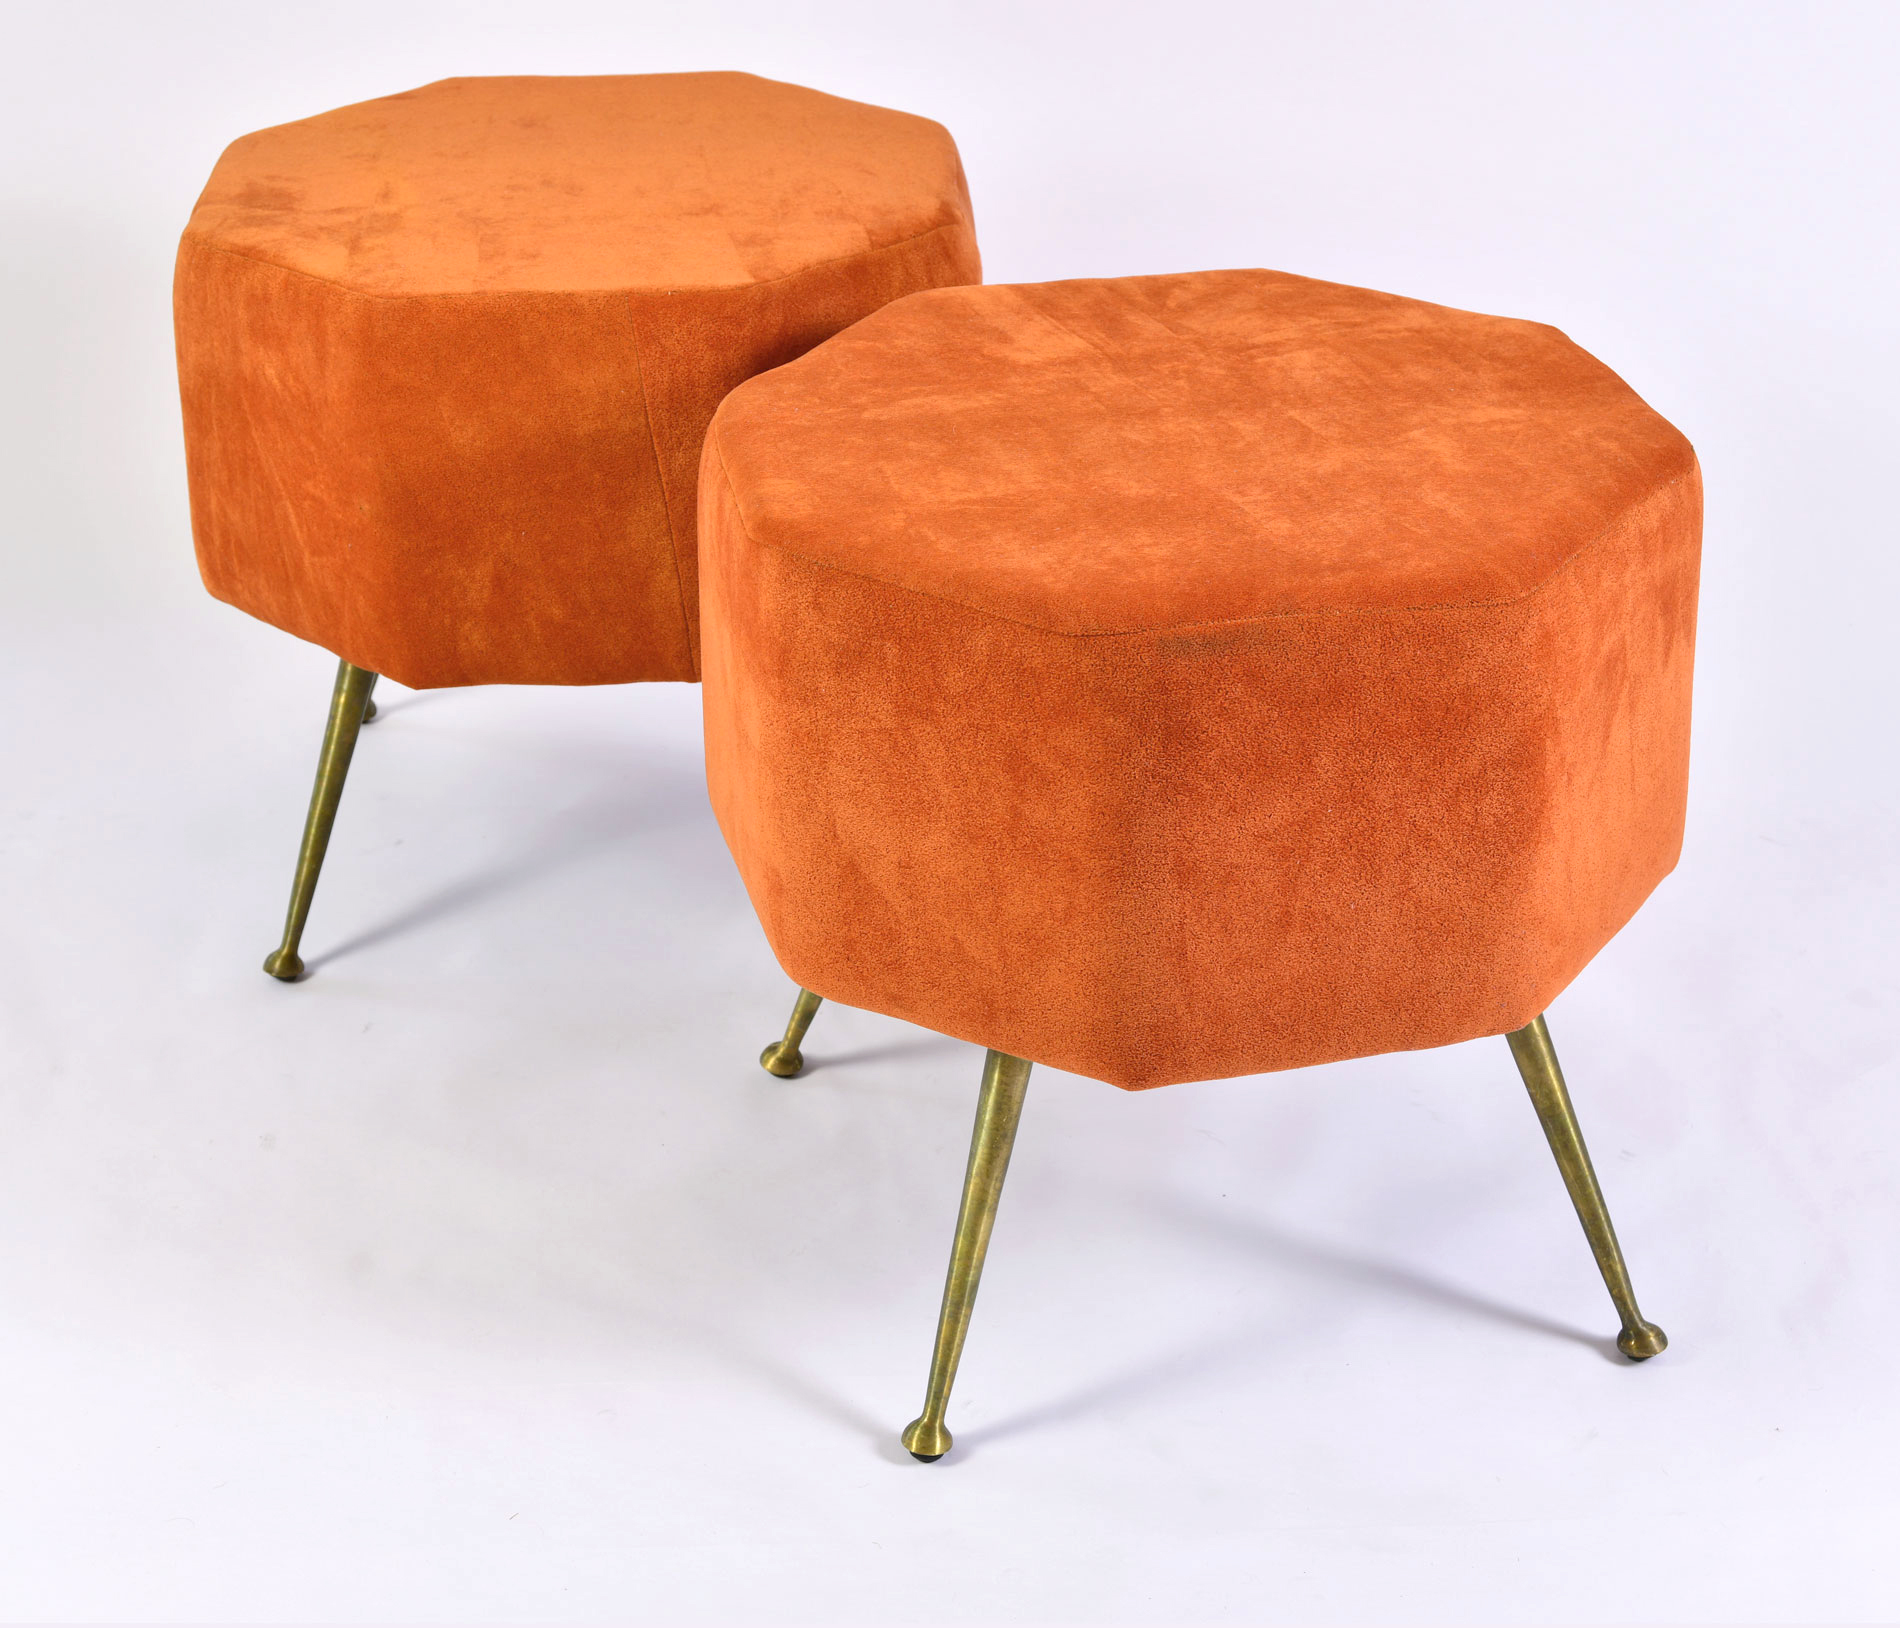 The image for Pair Of Orange Stools 04